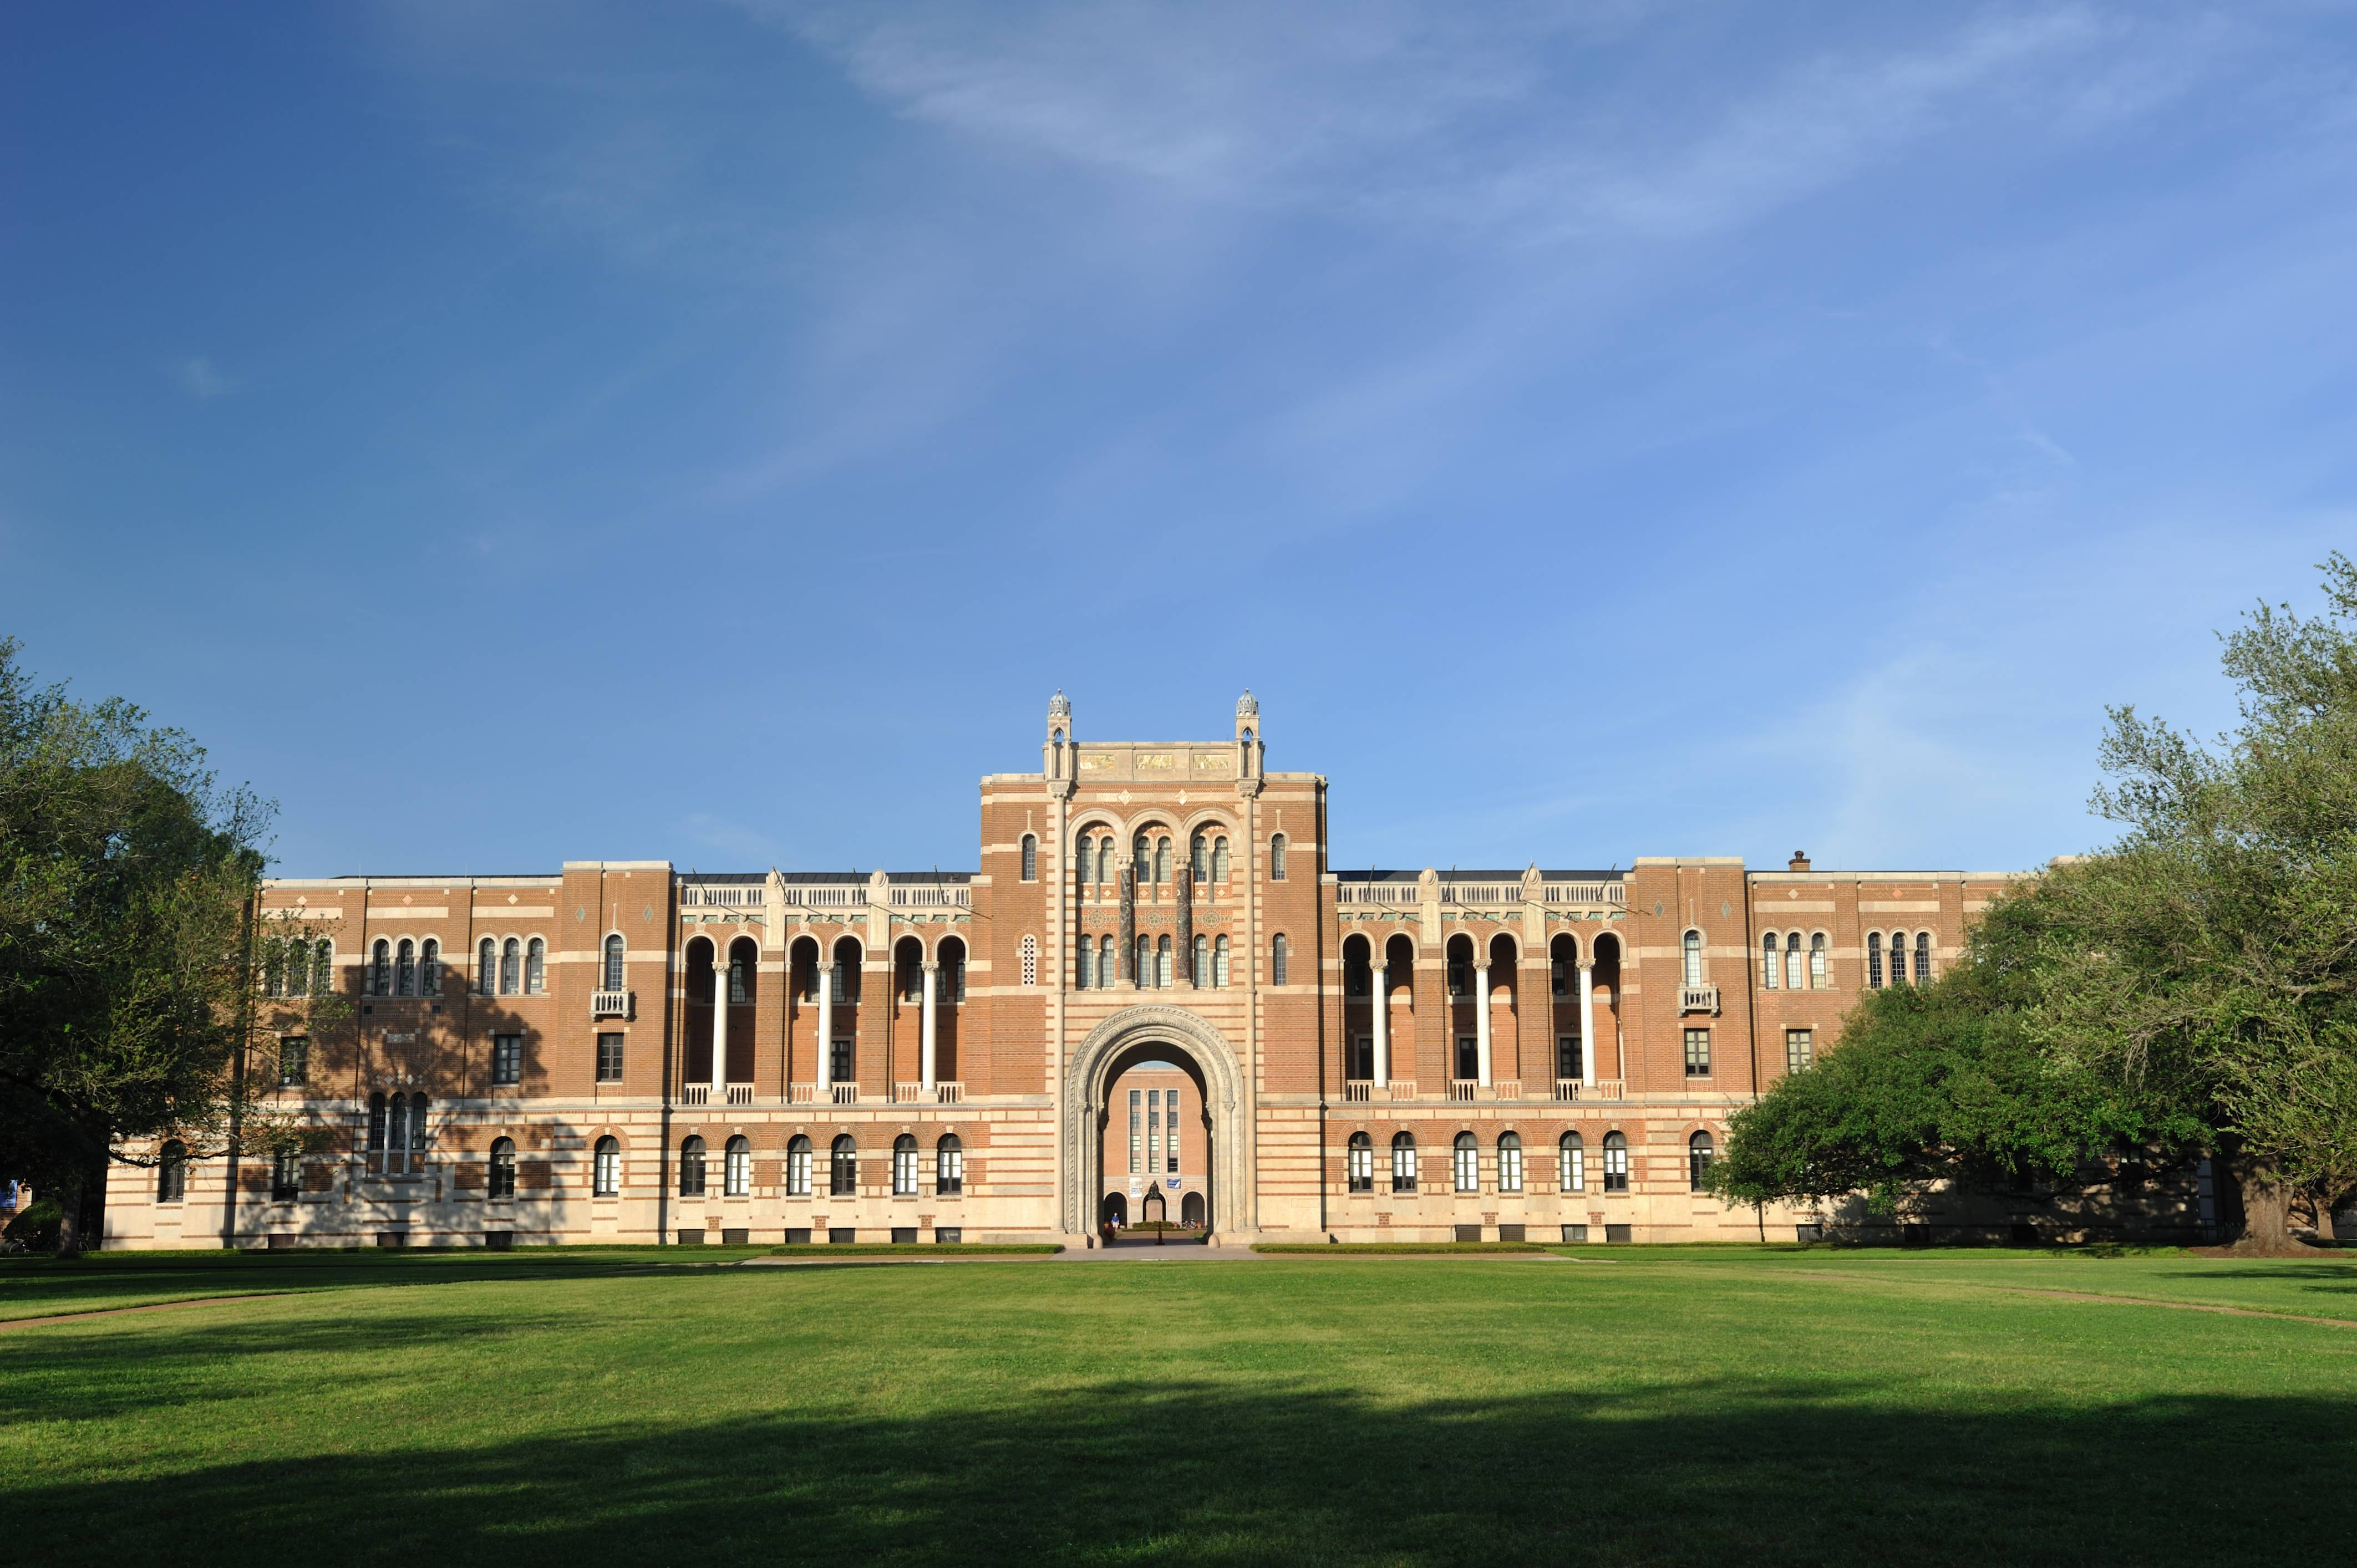 Lovett Hall in Rice University